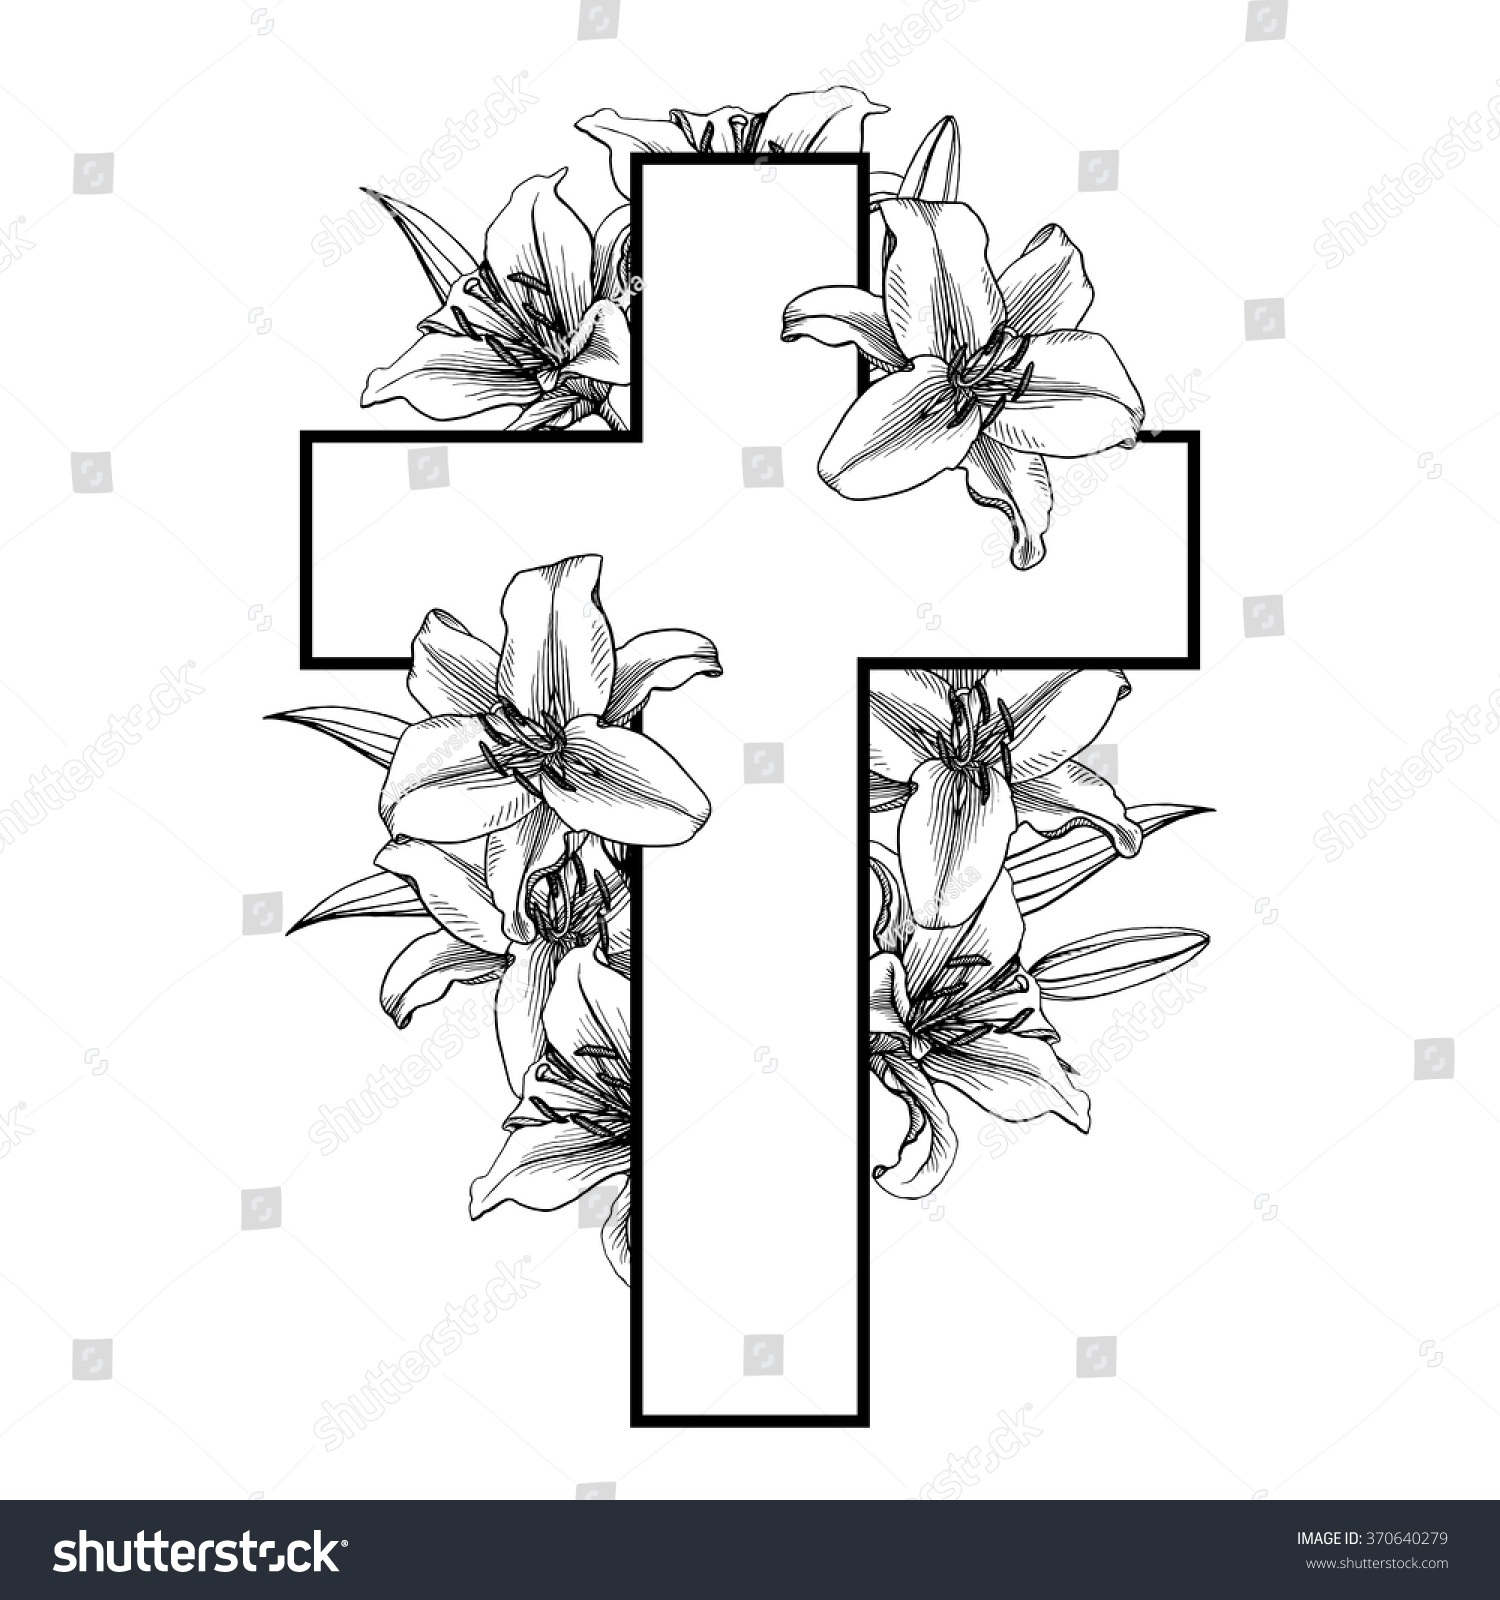 Flowers and pictures of black white